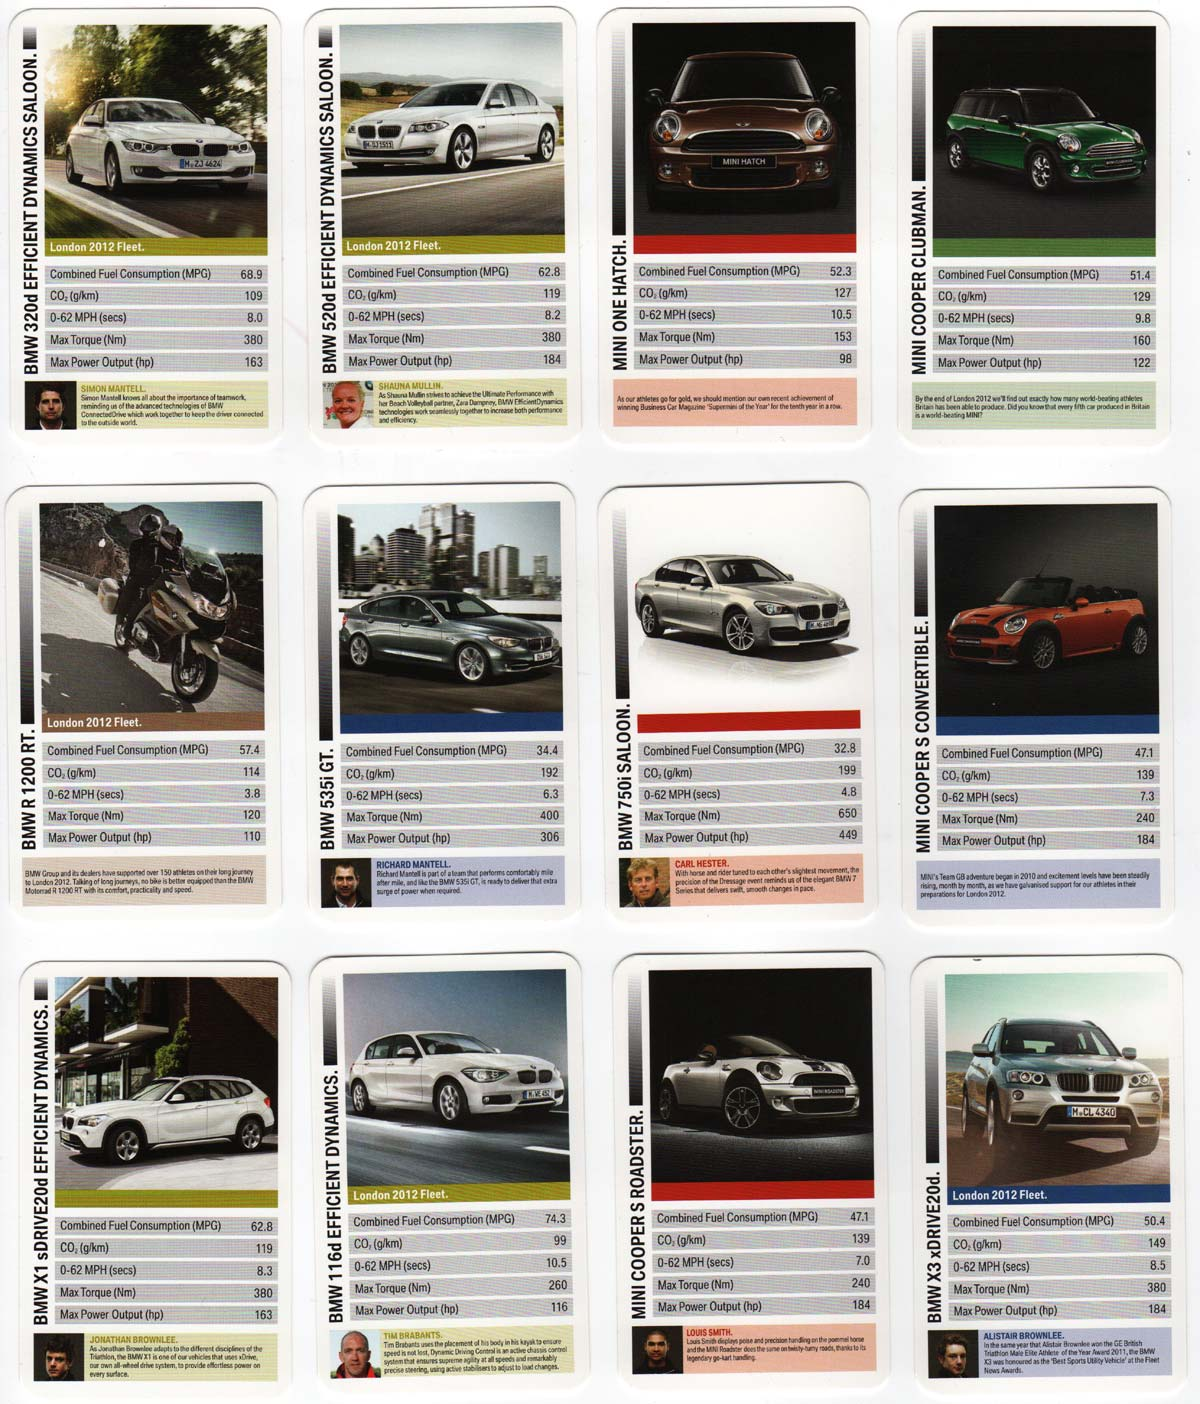 BMW Promo Top Trumps produced as promotion for the London 2012 Olympic Games